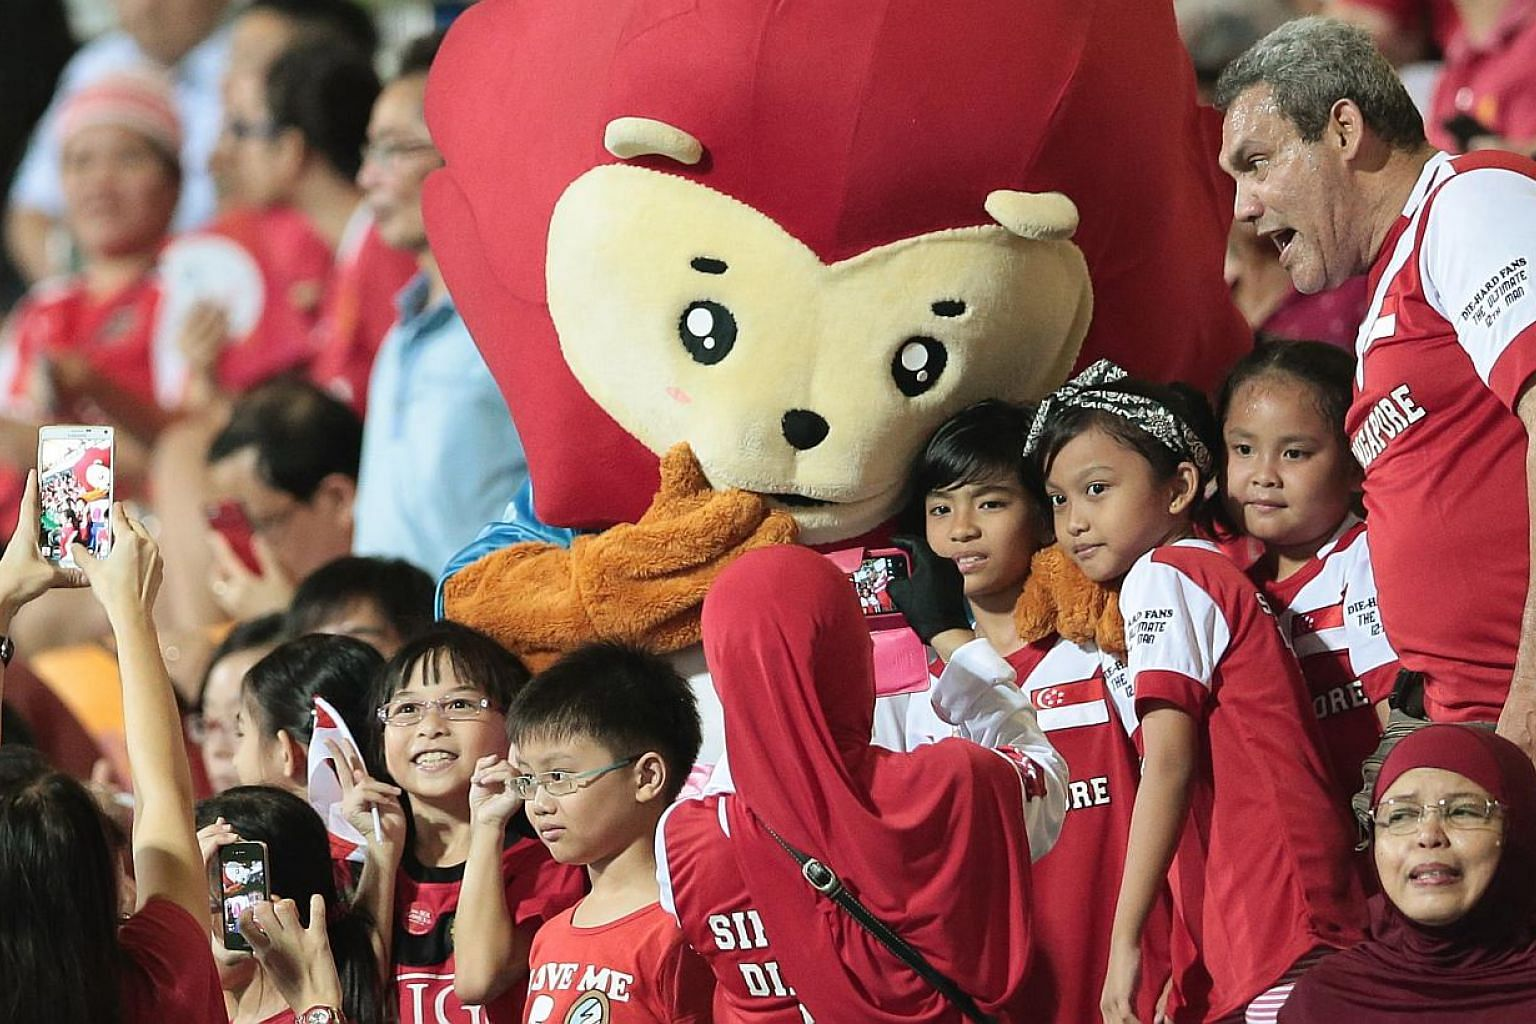 SEA Games mascot Nila posing with fans during the football match between Singapore and Philippines at the Jalan Besar Stadium on June 1, 2015. -- PHOTO: REUTERS